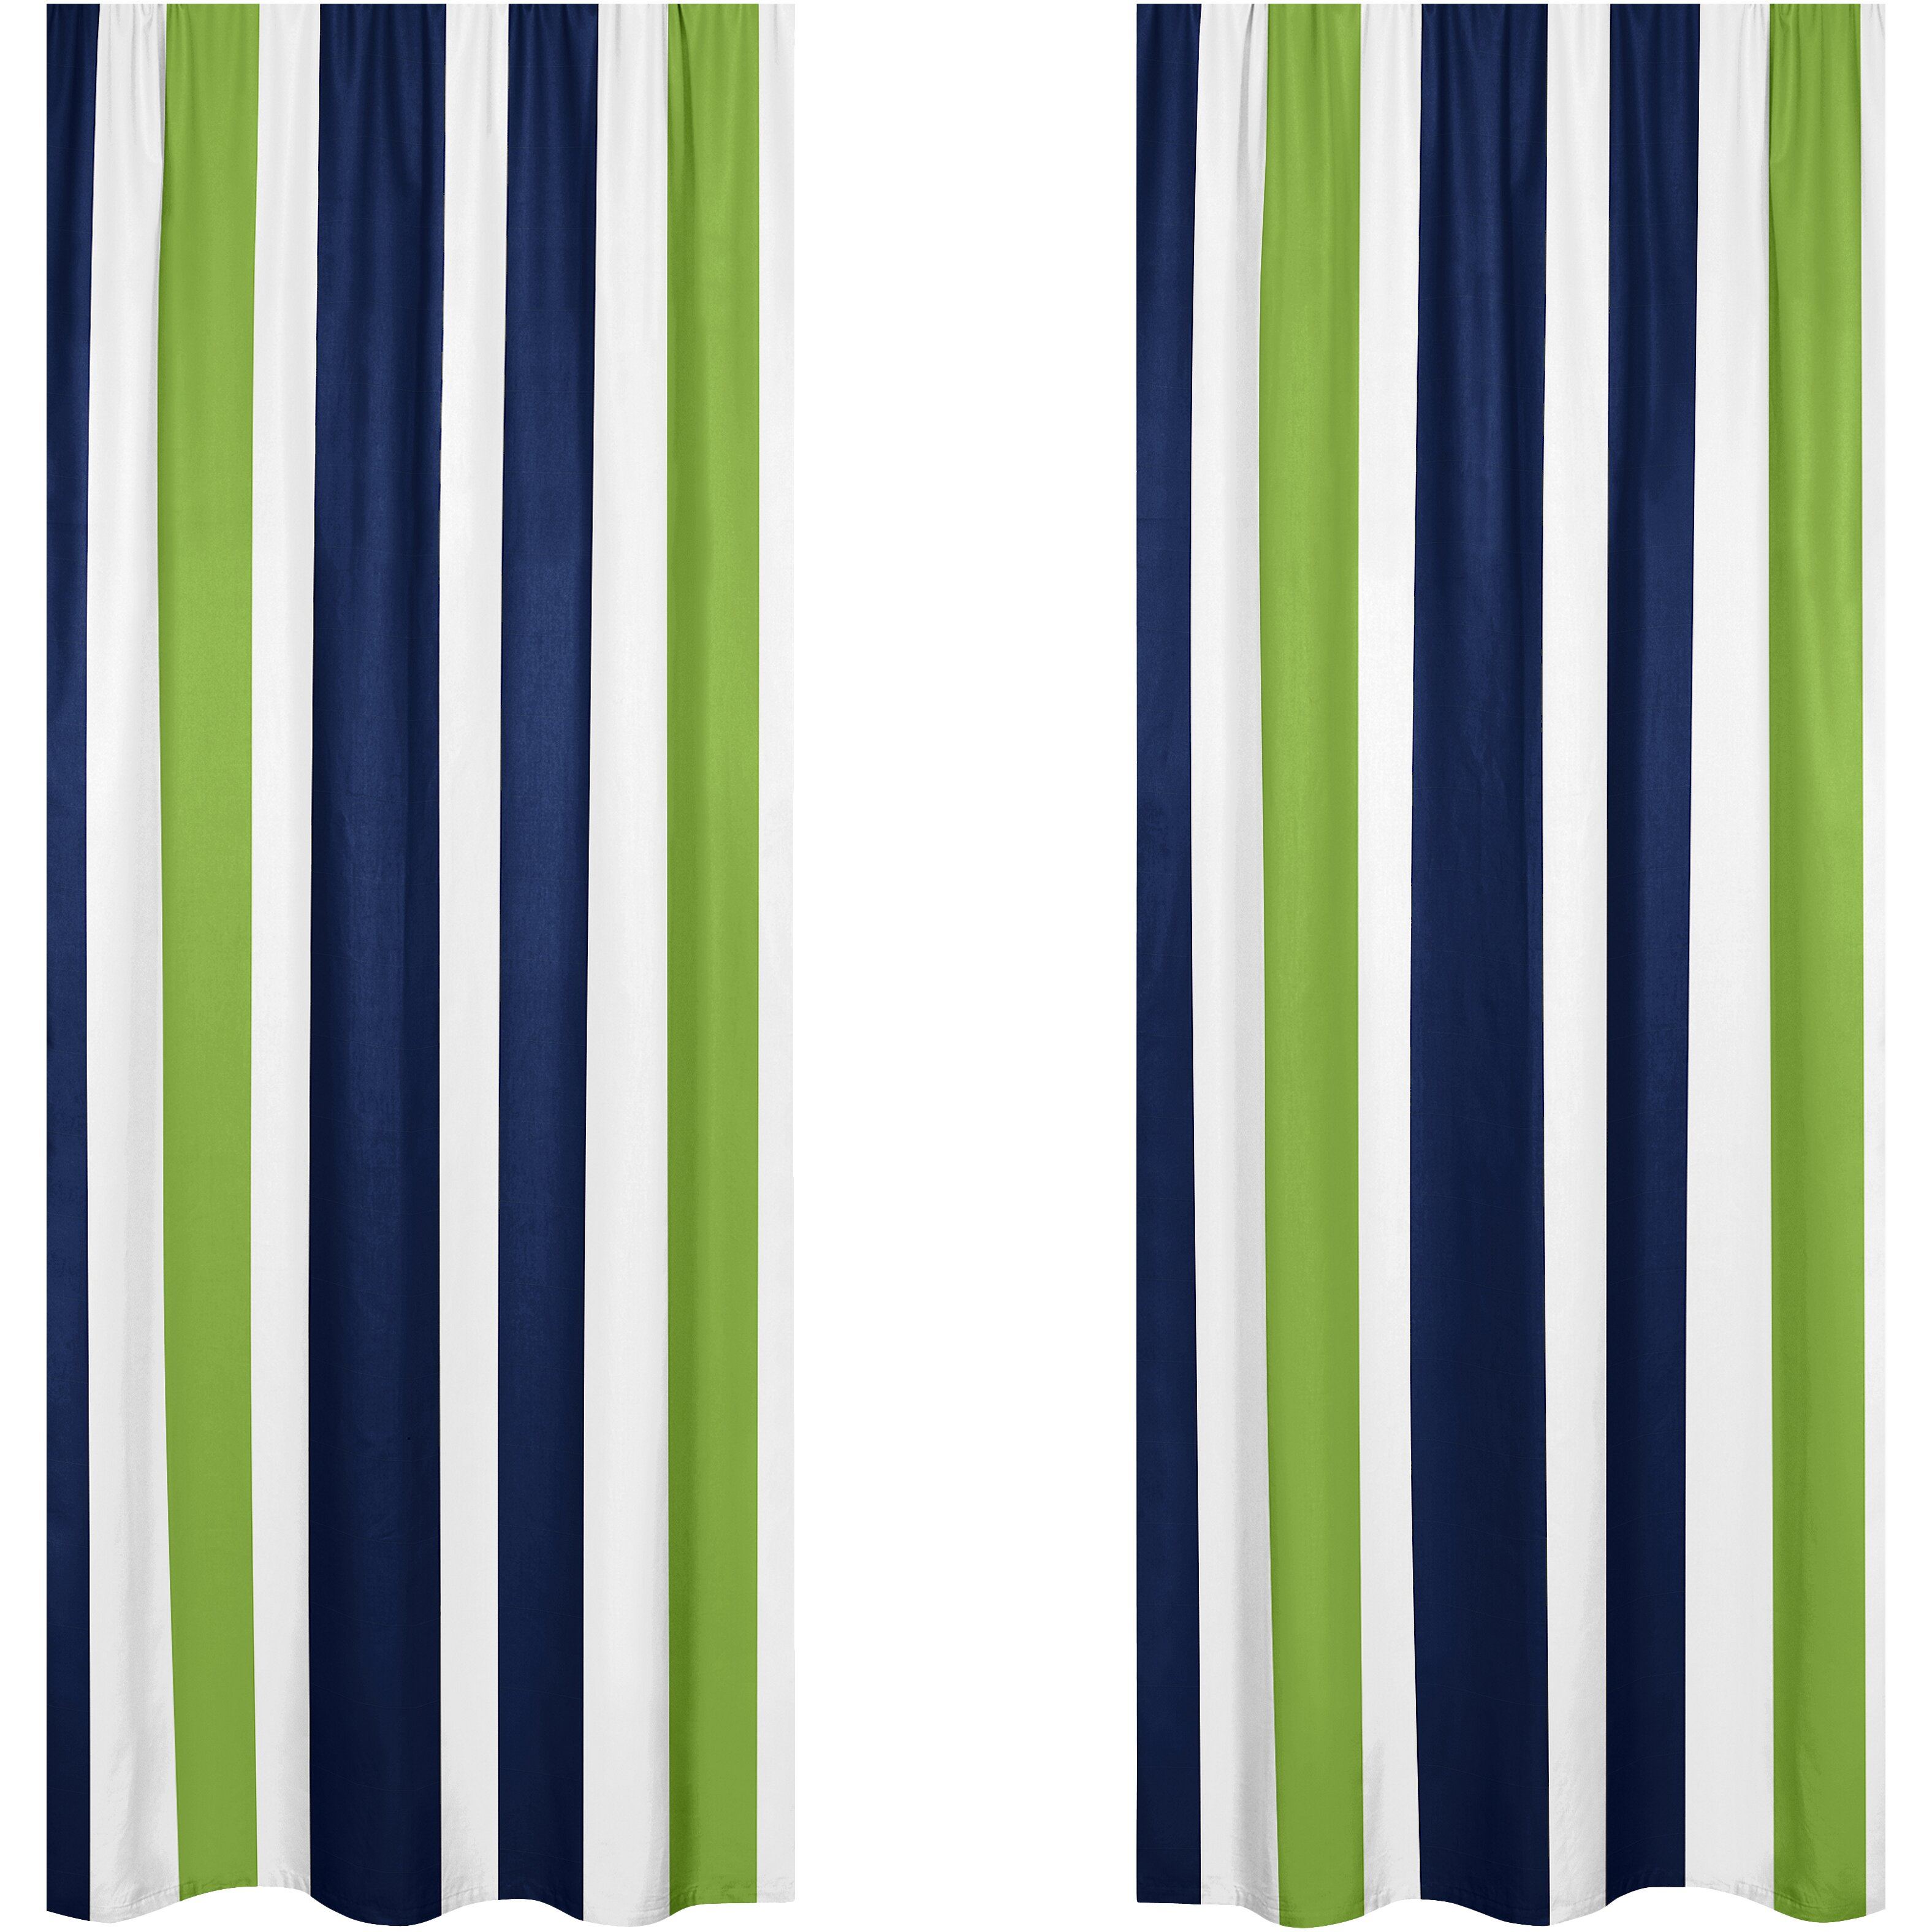 Sweet Jojo Designs Navy Blue And Lime Green Stripe Curtain